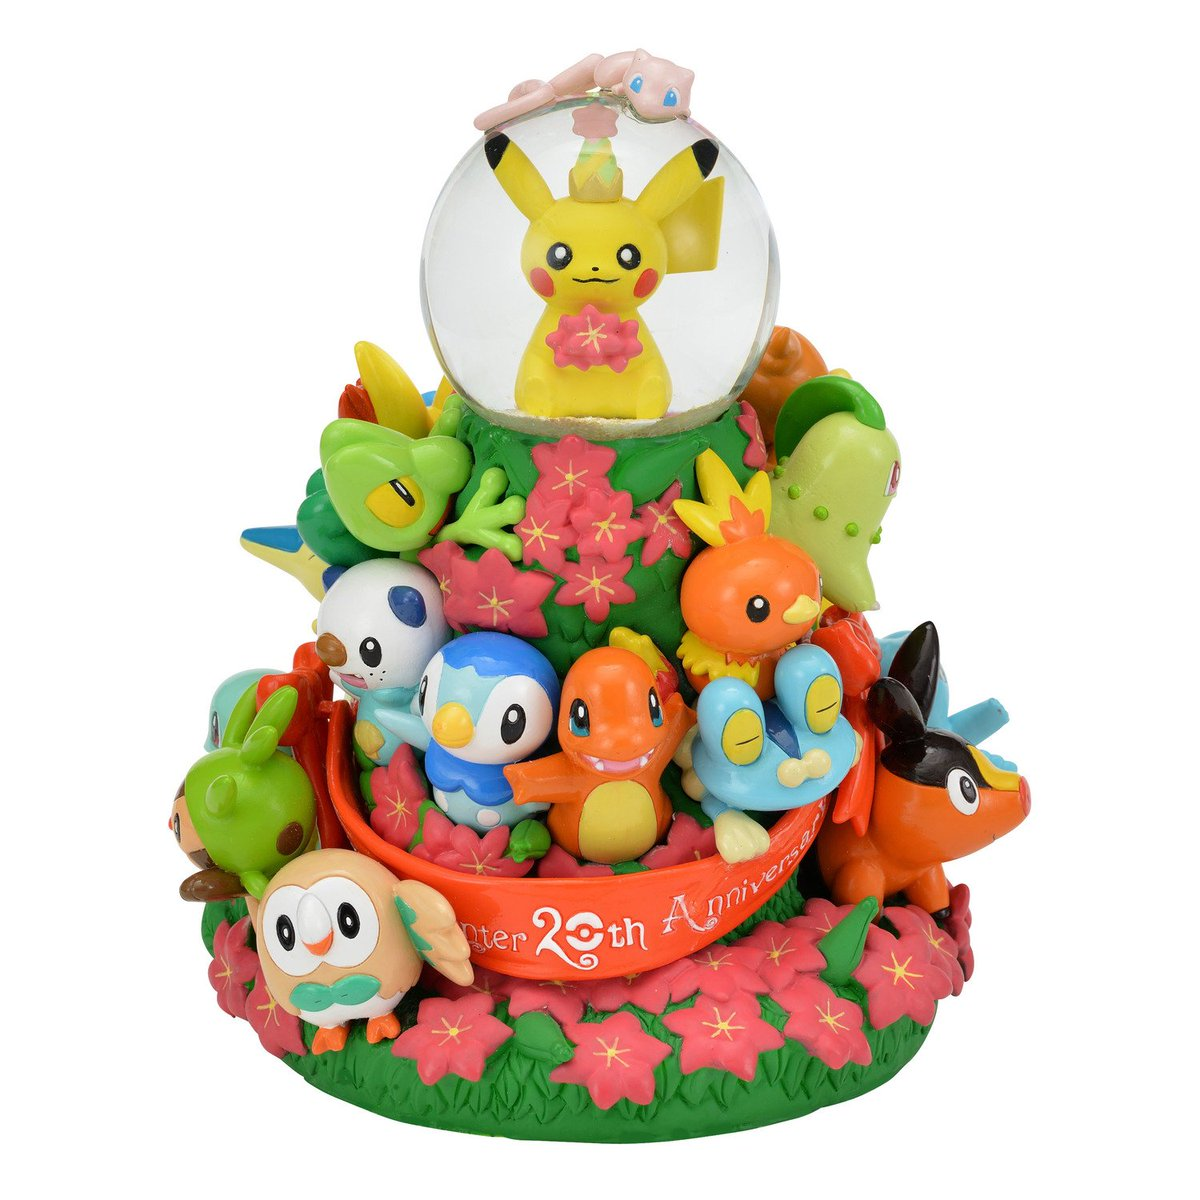 Pokeshopper Update : Pokémon Center Official 20th anniversary snow globe statue to become available for preorder. Details @  https:// Pokeshopper.com/news.html  &nbsp;  <br>http://pic.twitter.com/sdOzQUb67C